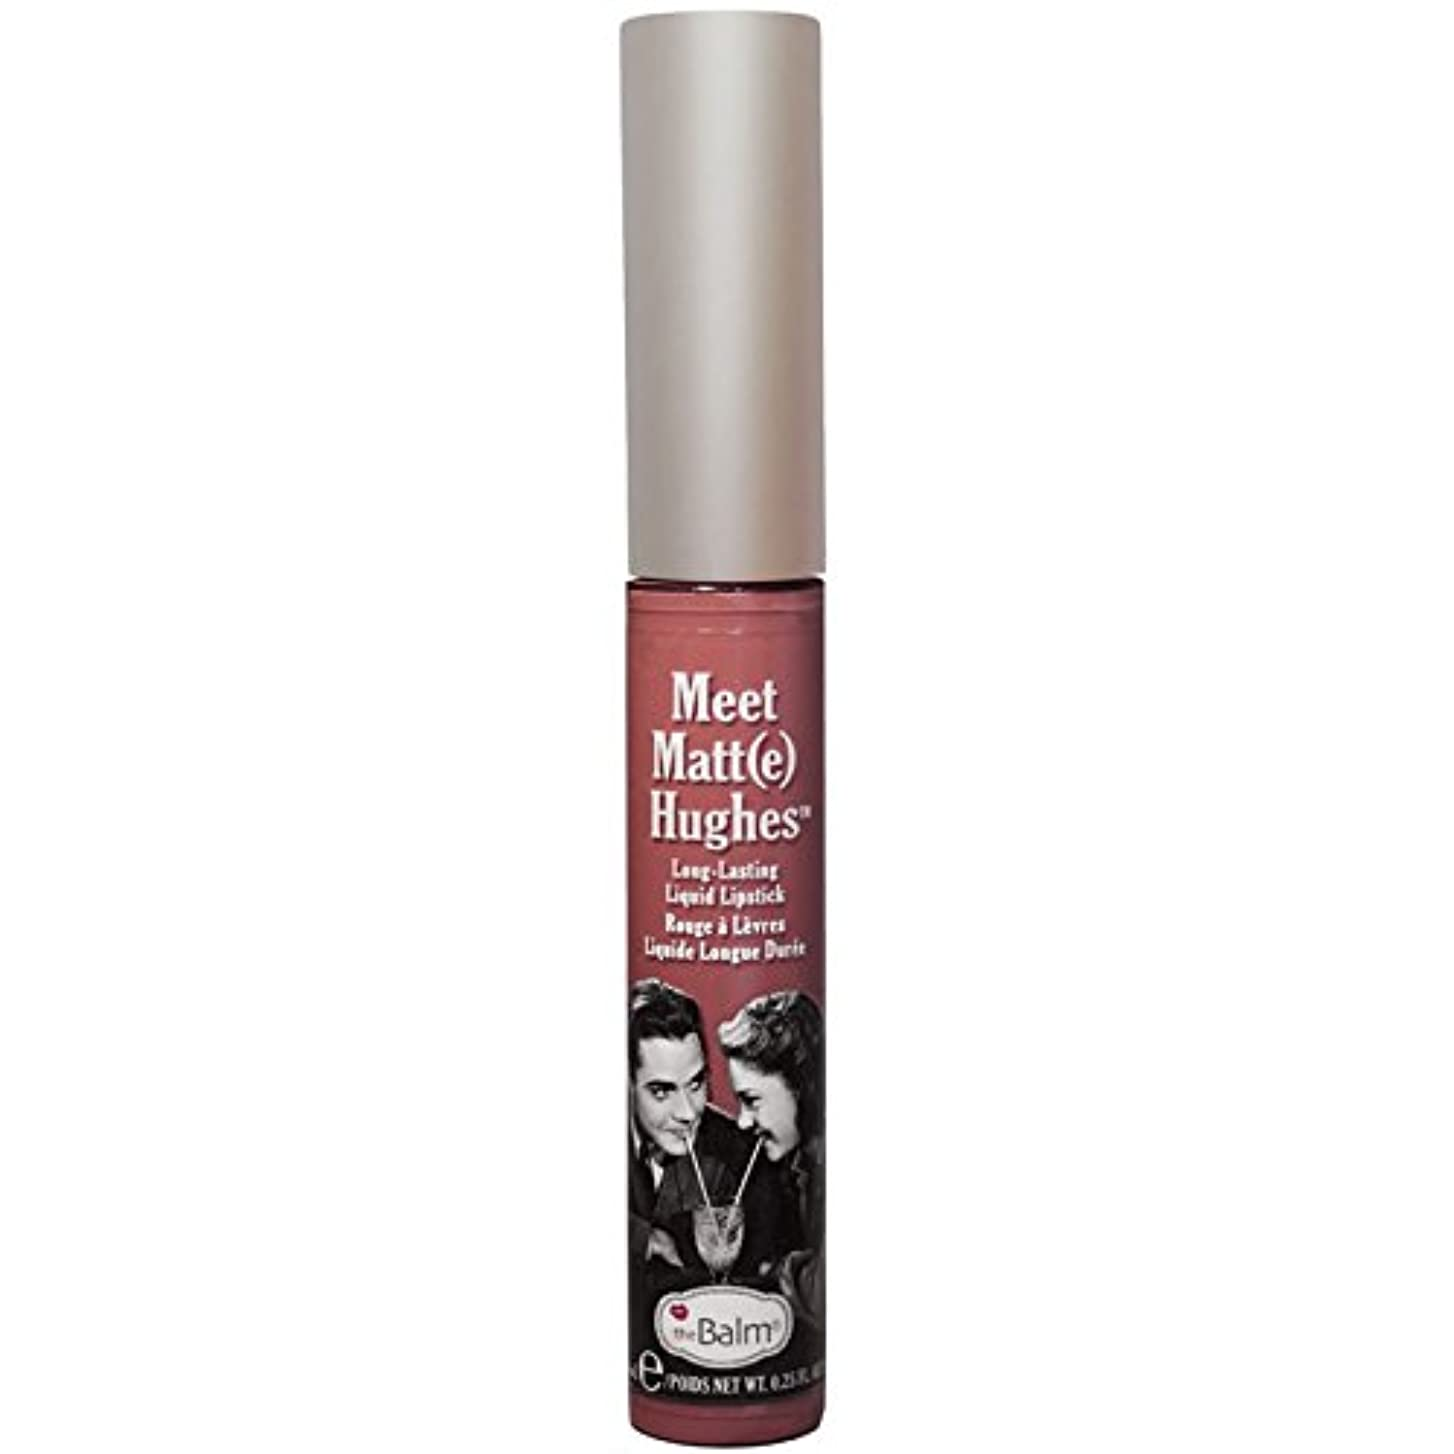 インフラせっかちひねくれたtheBalm - Meet Matt(e) Hughes Long-Lasting Liquid Lipstick Sincere [並行輸入品]